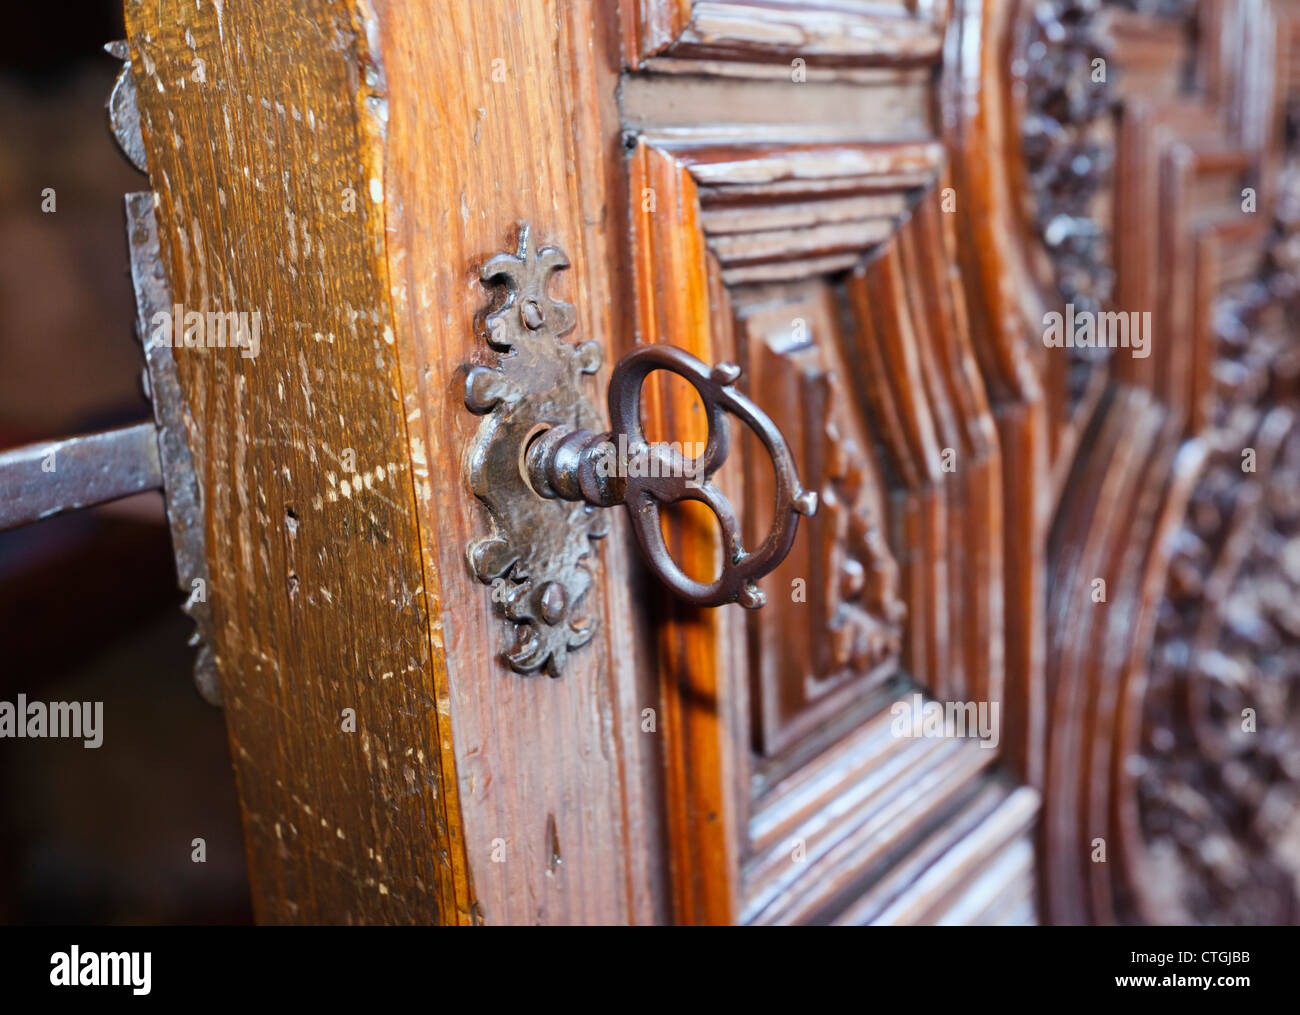 Carmona, Seville Province, Spain. Ancient door and lock in the Prioral de Santa Maria. Priory of Santa Maria. - Stock Image